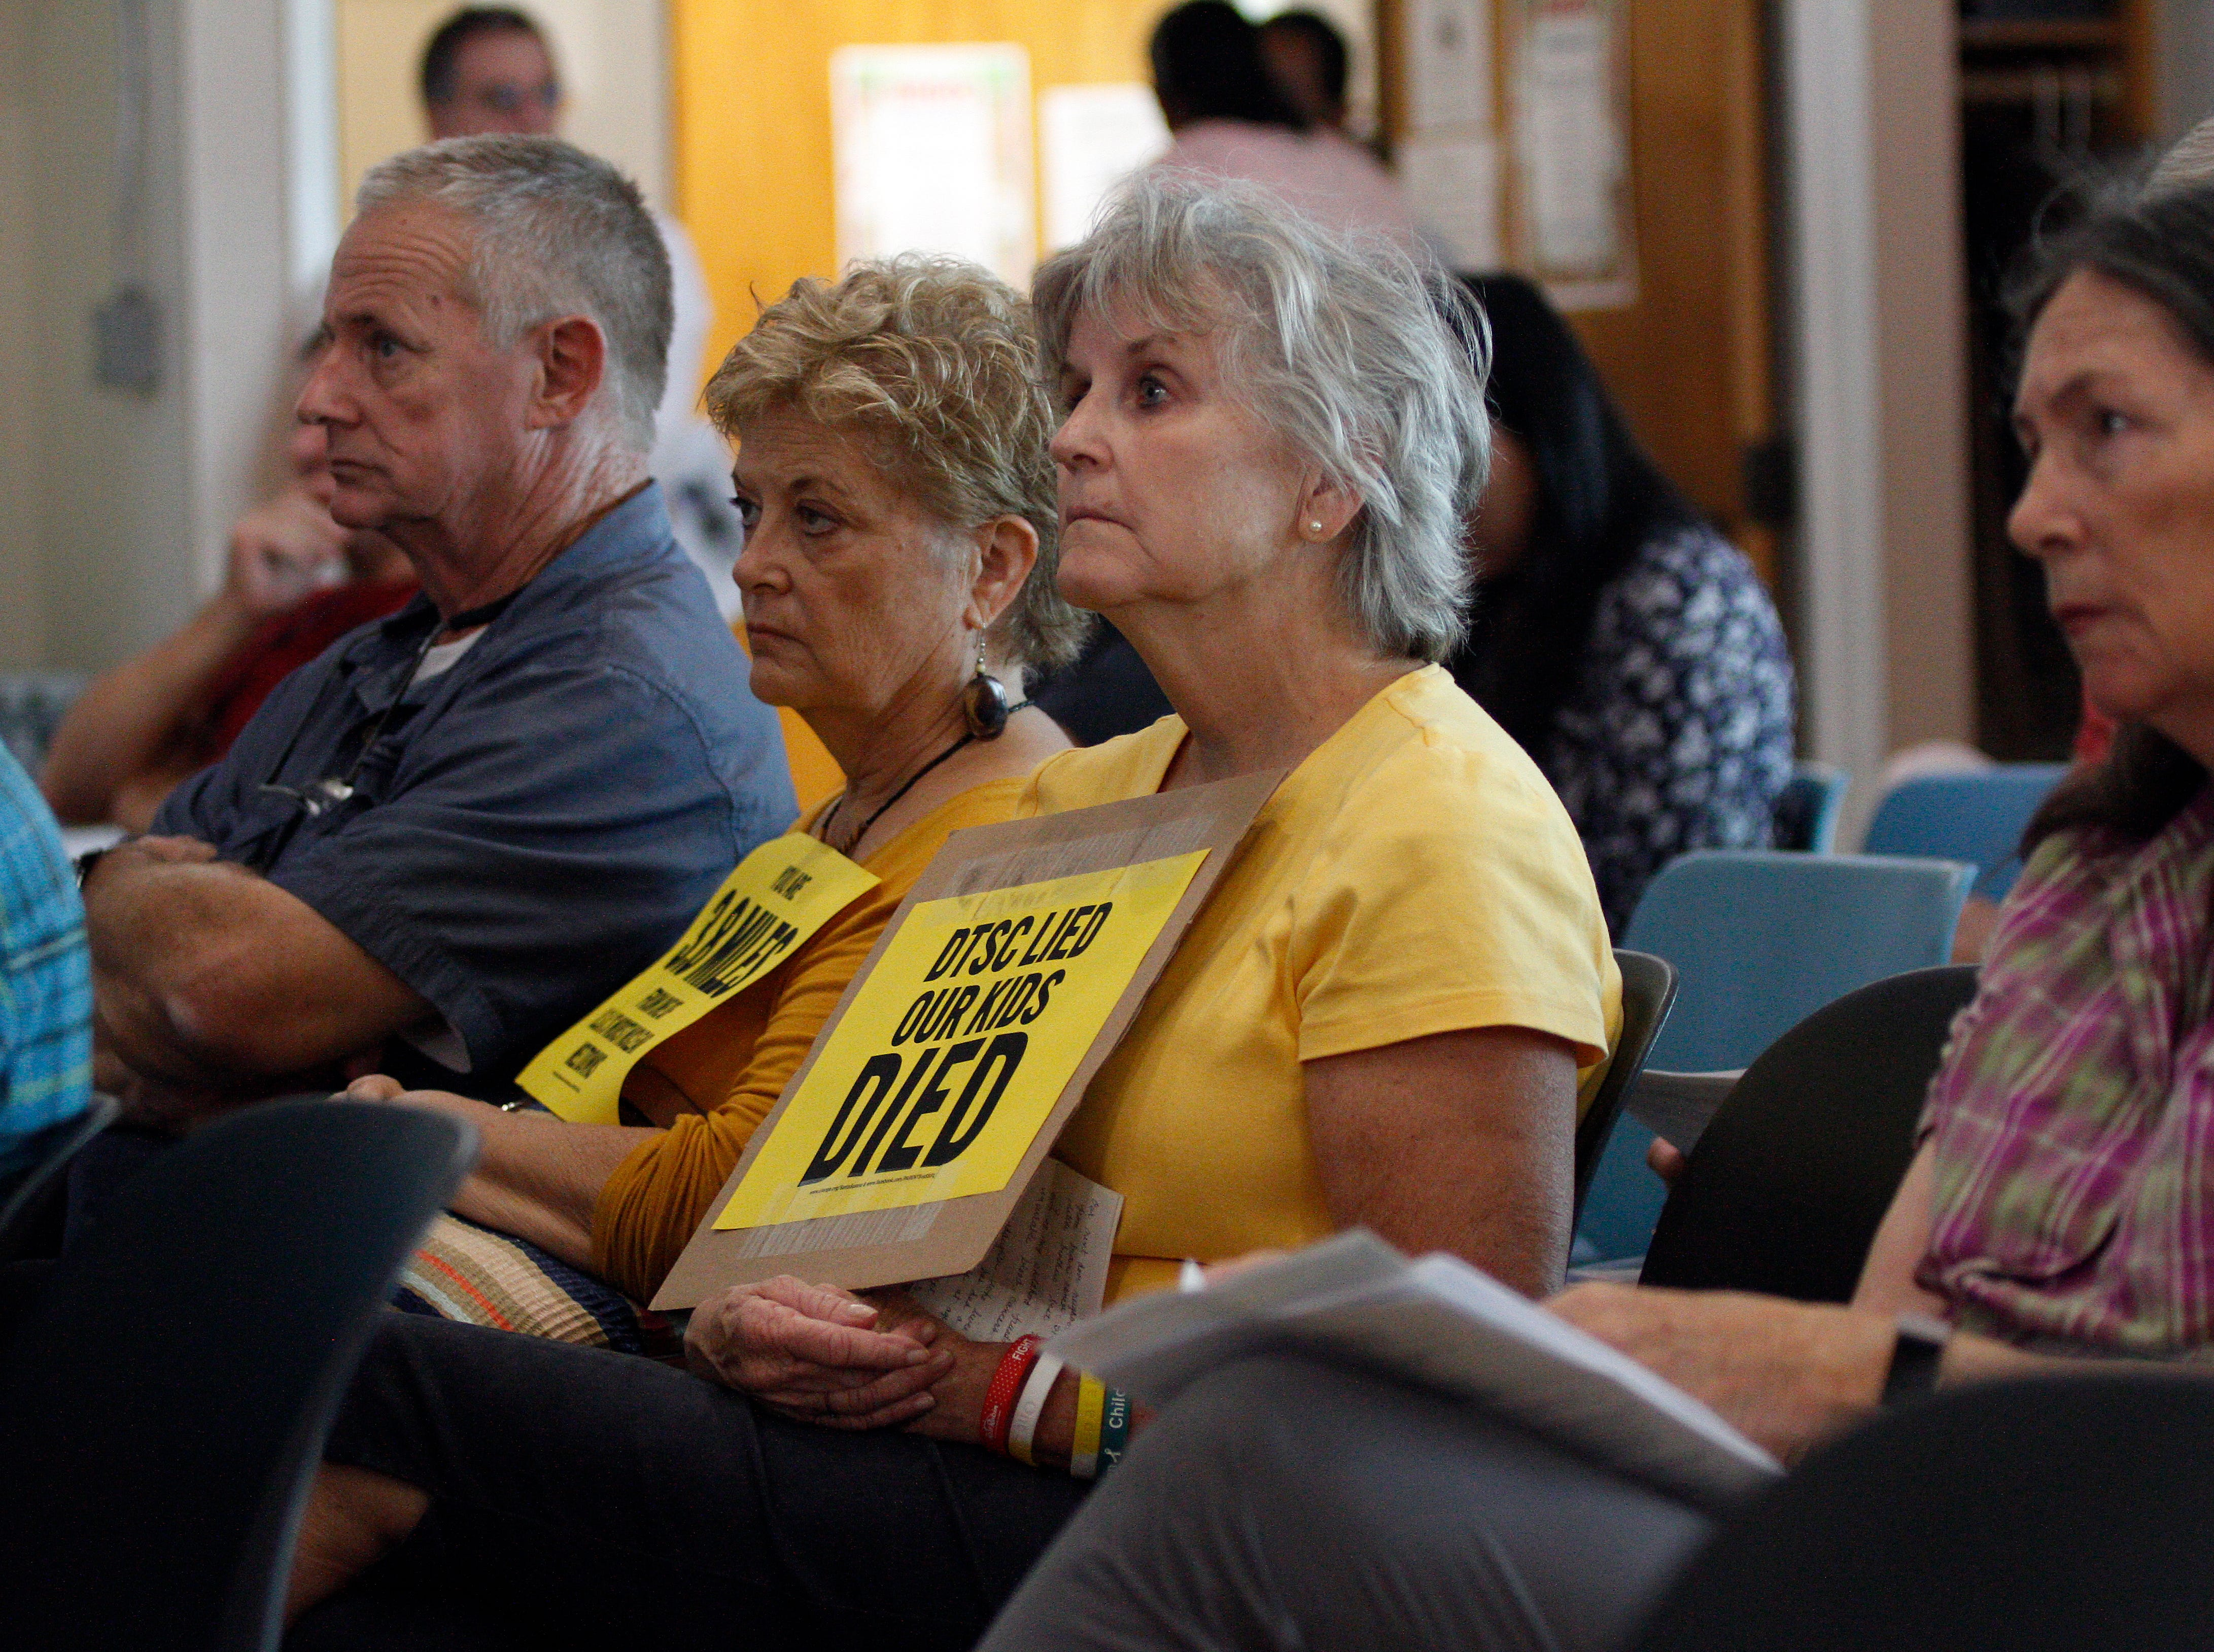 Deva Andrews, left, and Karin Carlson hold signs to protest the California Department of Toxic Substances Control's handling of the proposed cleanup of the Santa Susana Field Lab during a public hearing Saturday at the Simi Valley Senior Center.